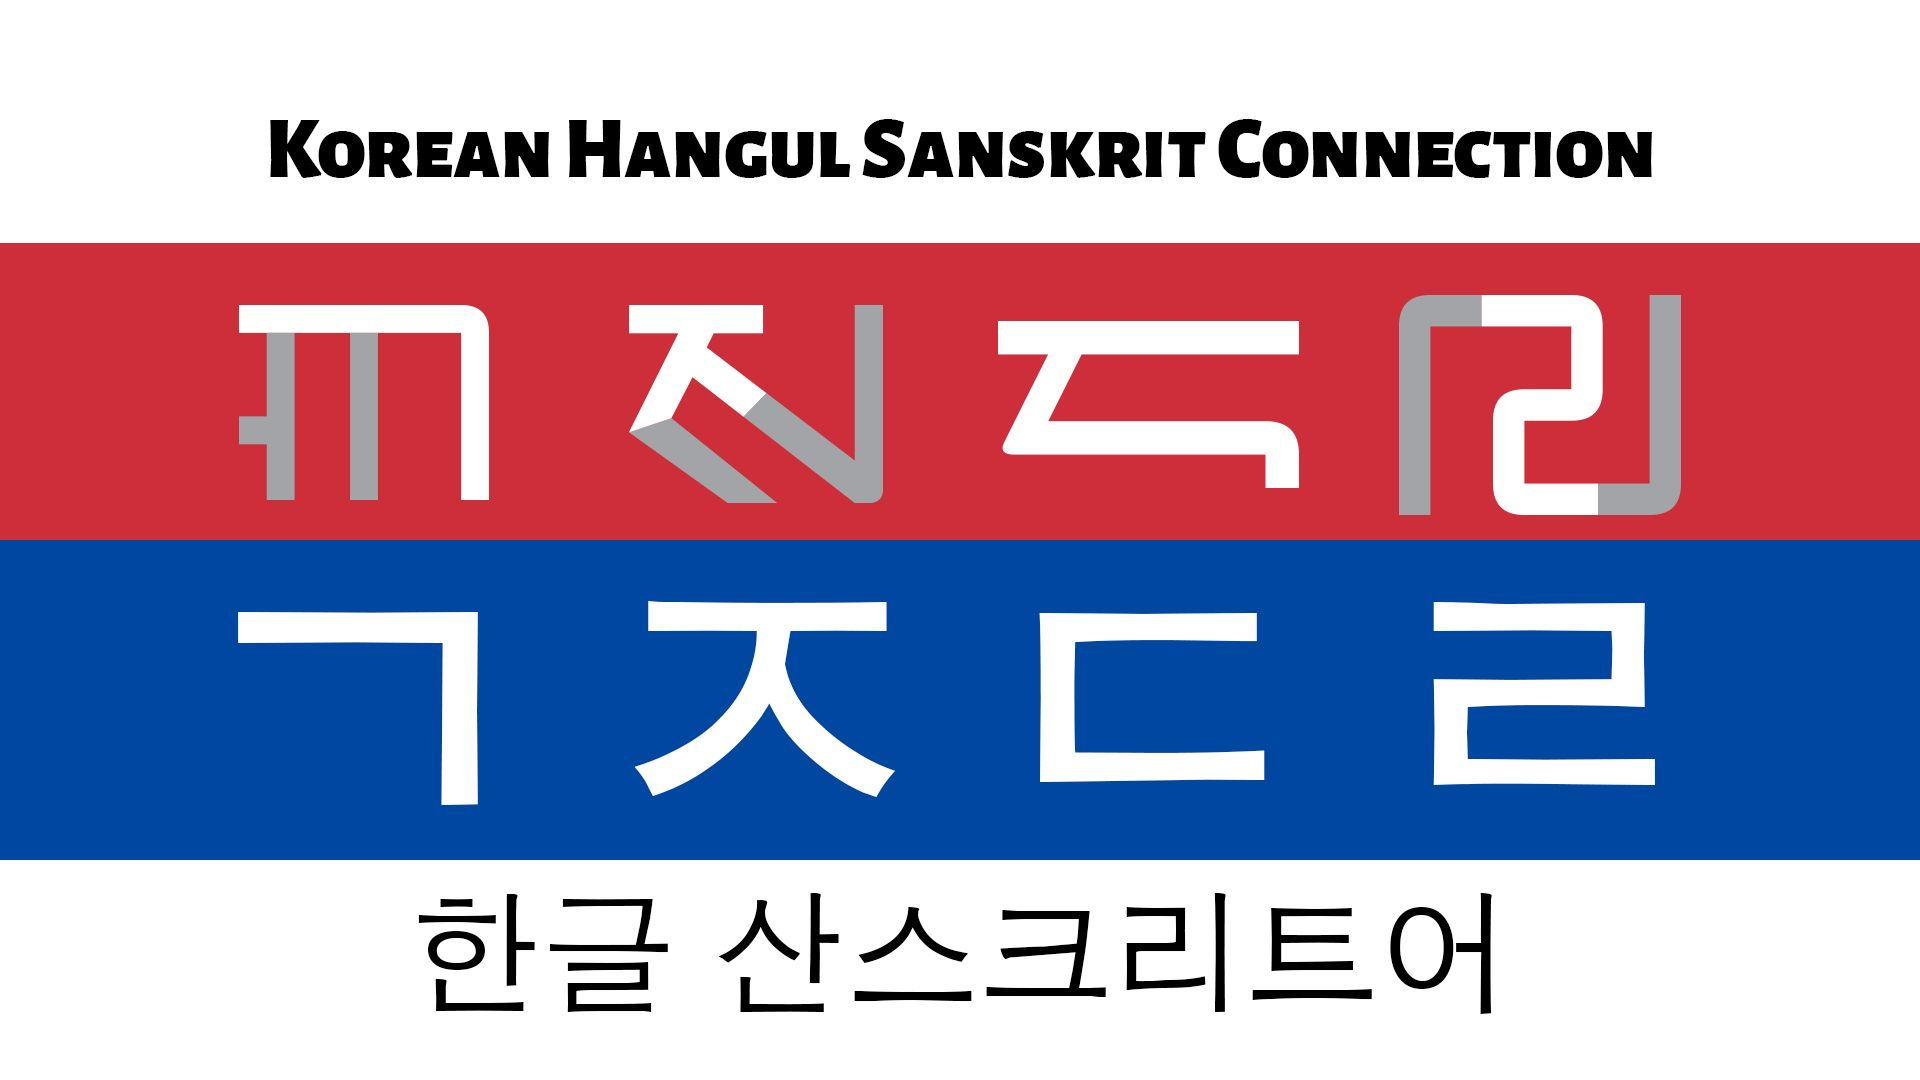 The Korean 한글 Han-gul Indian Connection and My Personal Language Learning Operating System